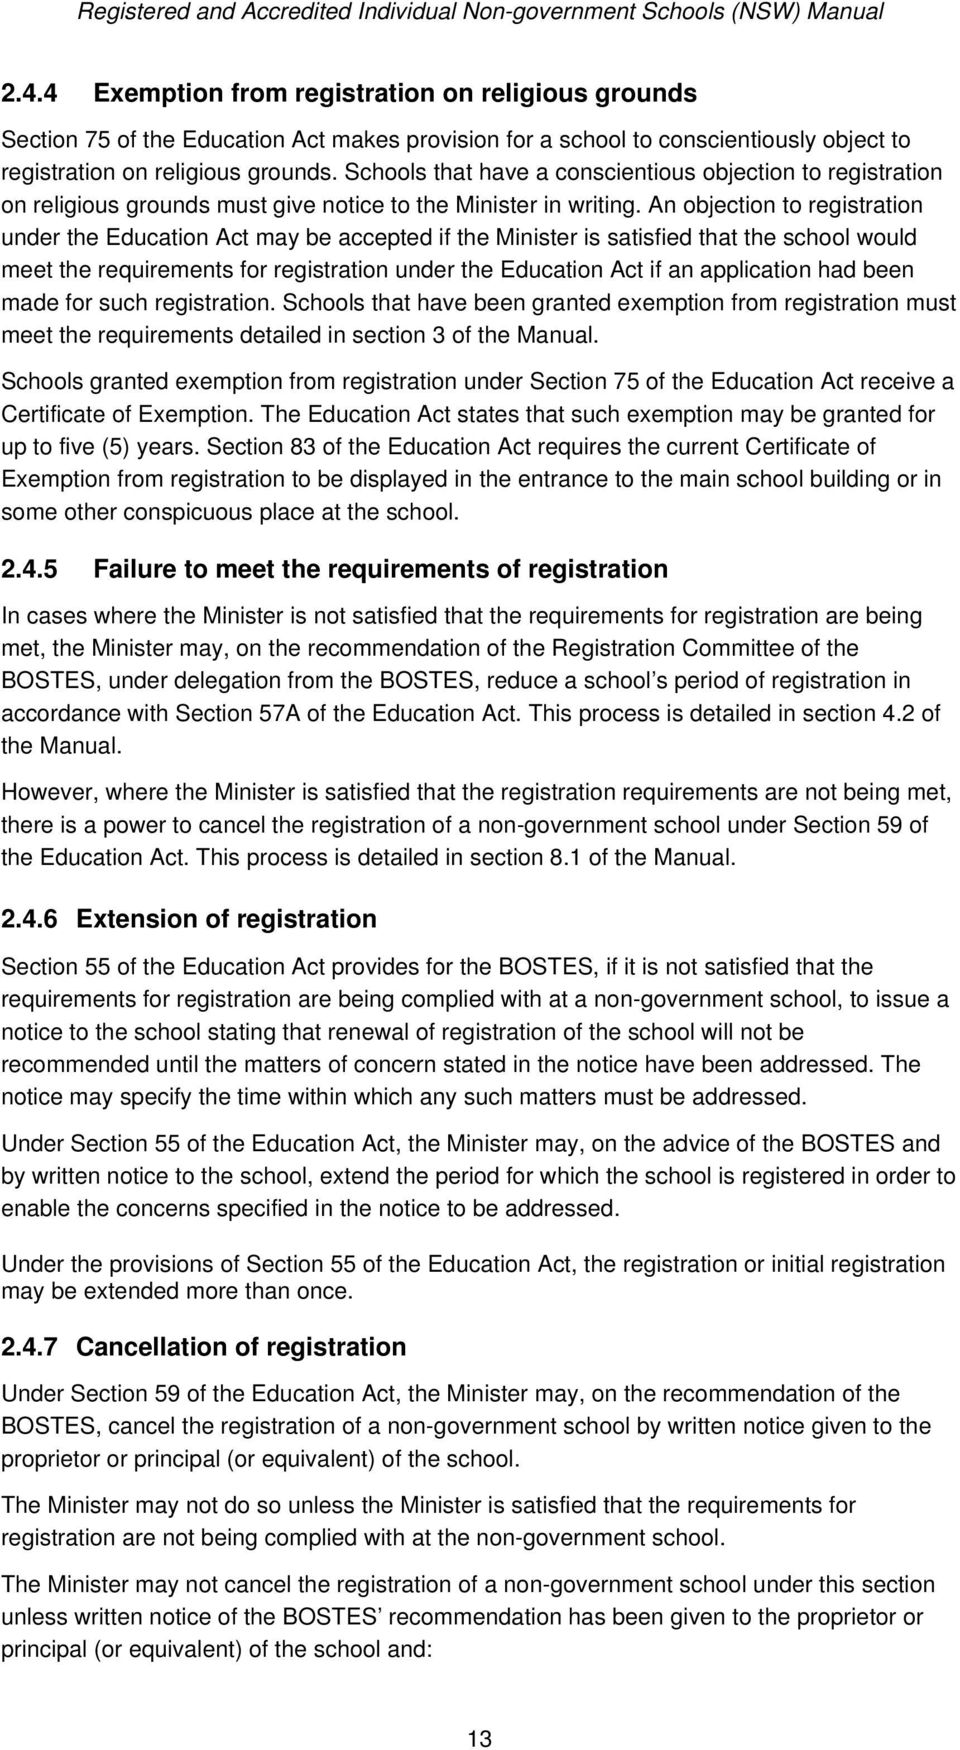 An objection to registration under the Education Act may be accepted if the Minister is satisfied that the school would meet the requirements for registration under the Education Act if an